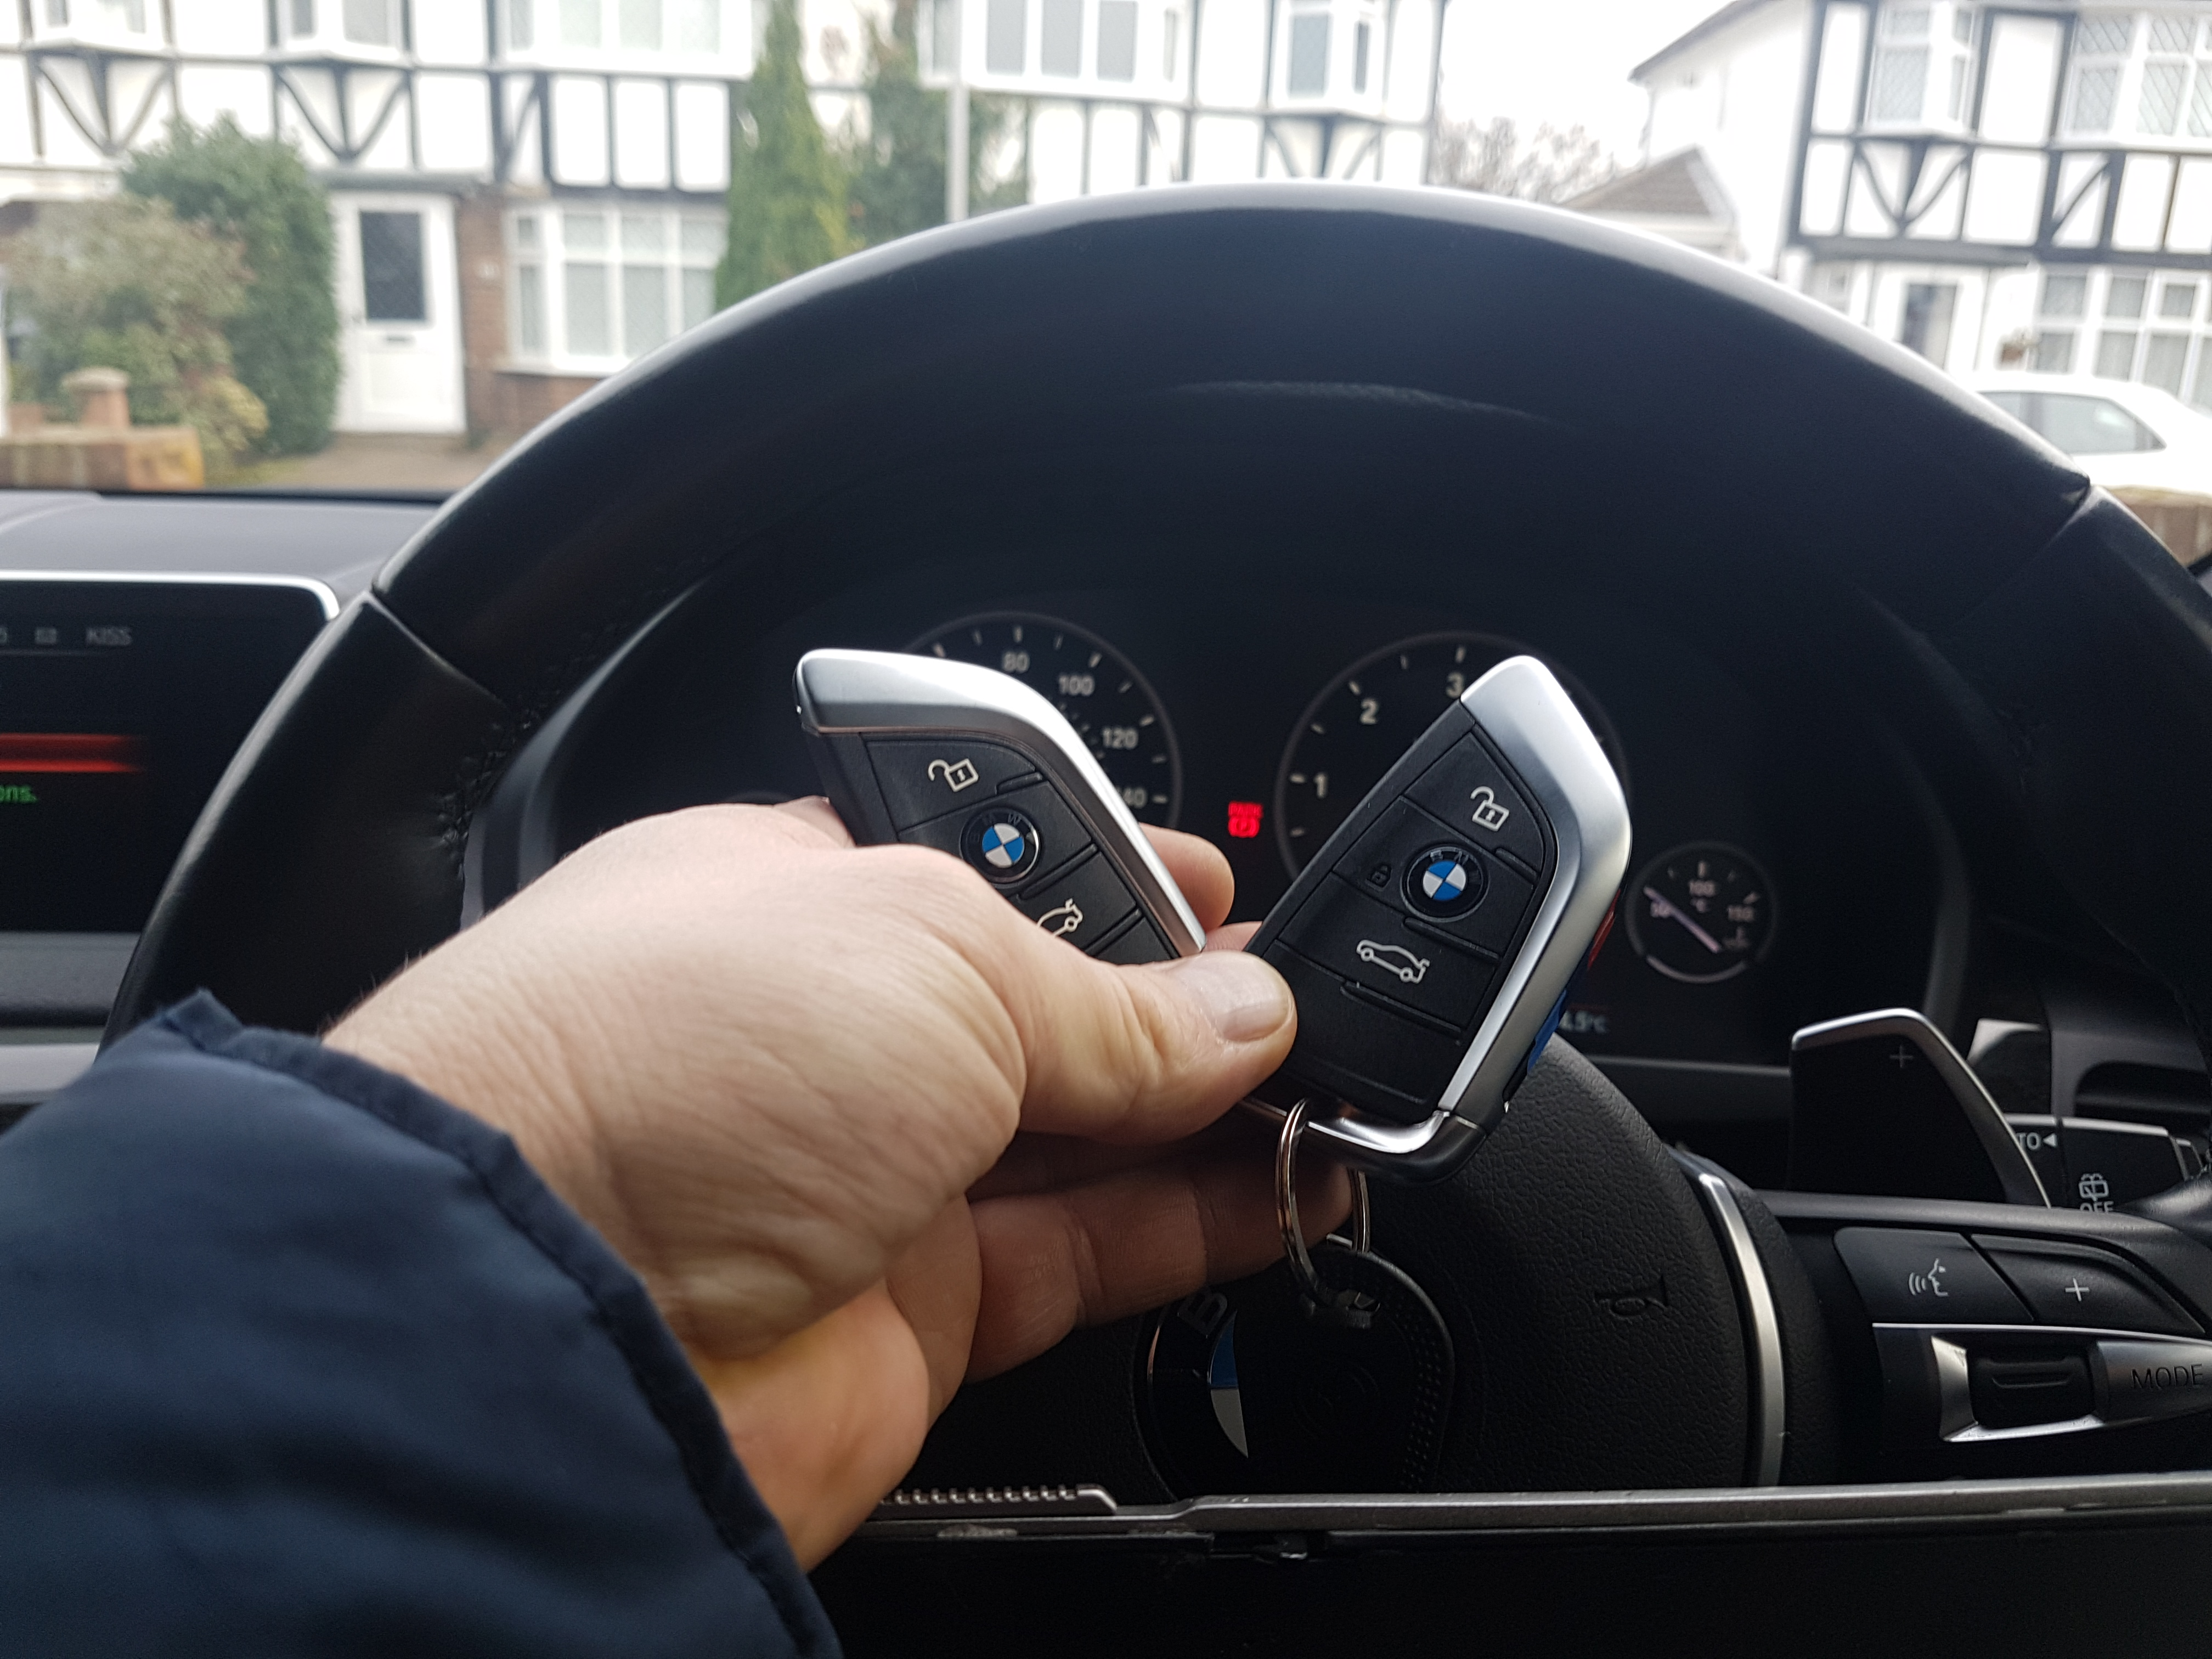 BMW X5 ADDITIONAL KEY